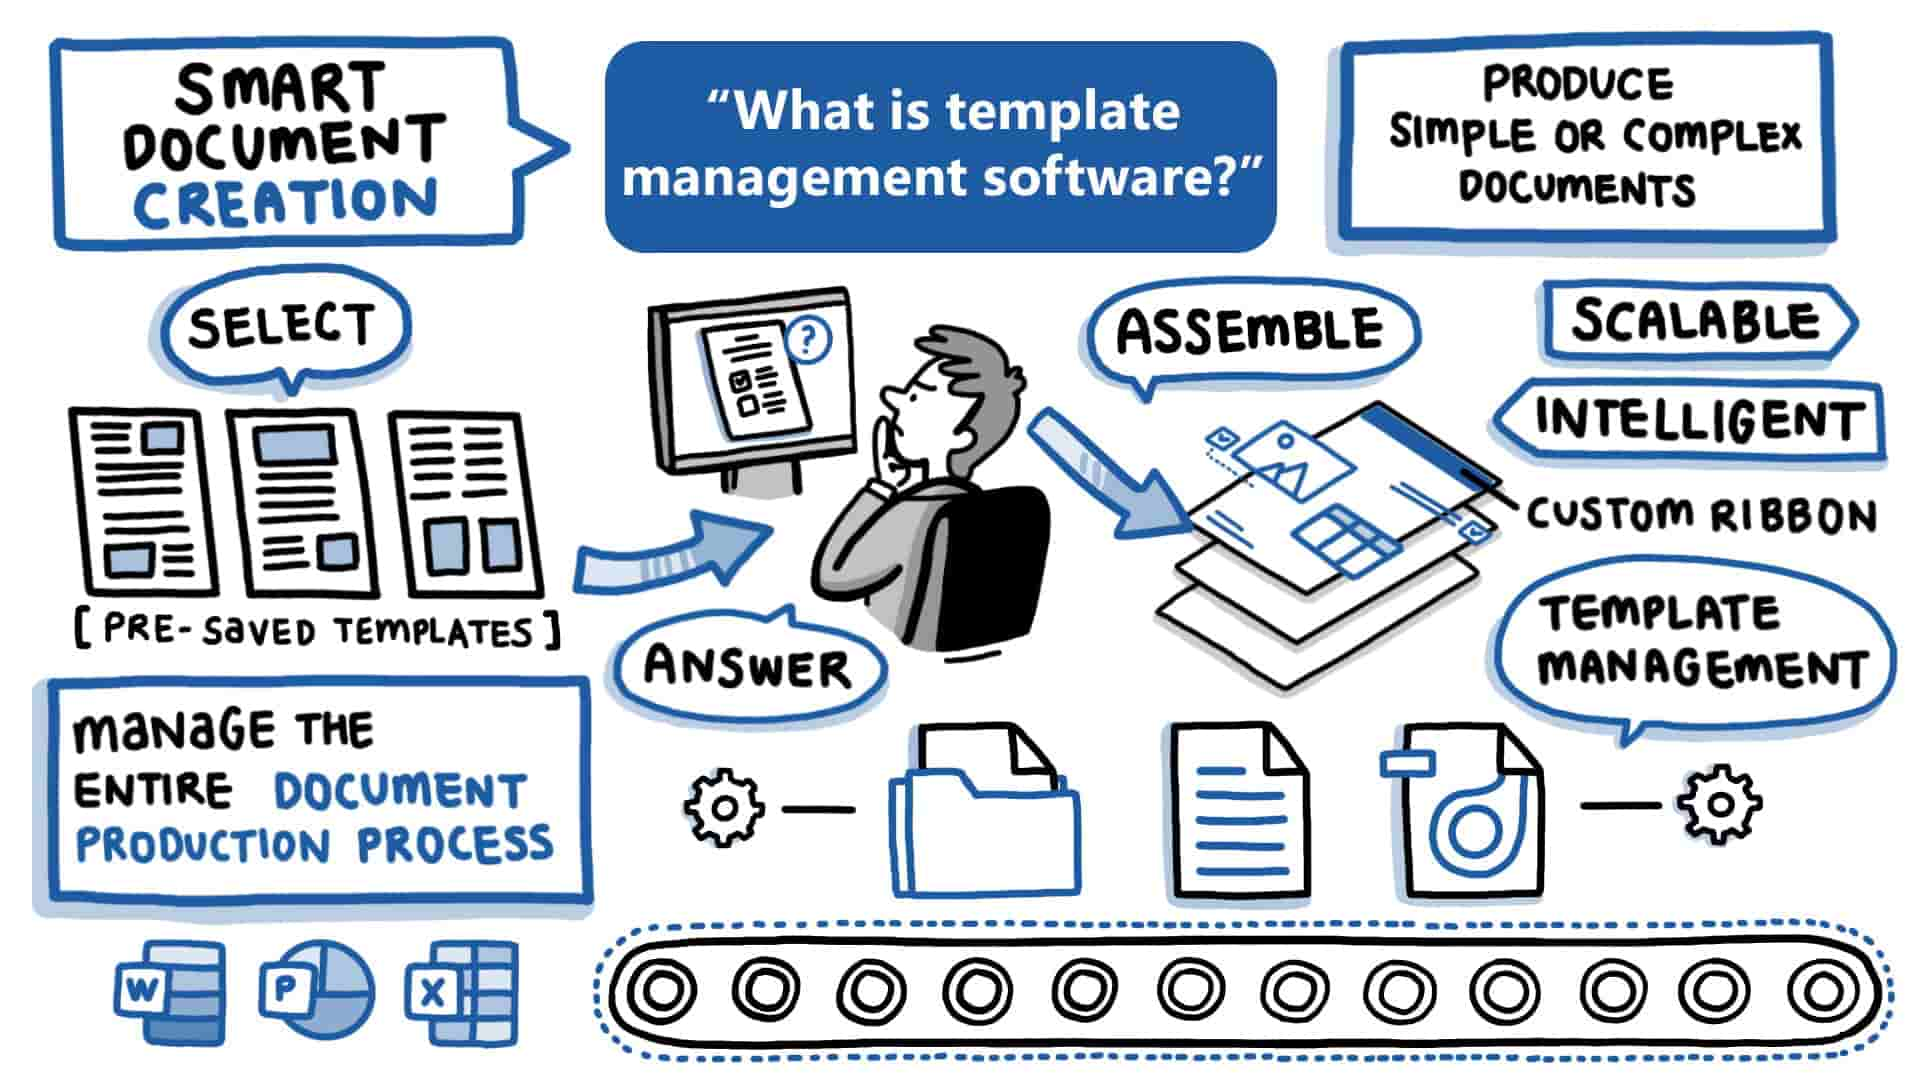 What common document problems can template management software resolve?